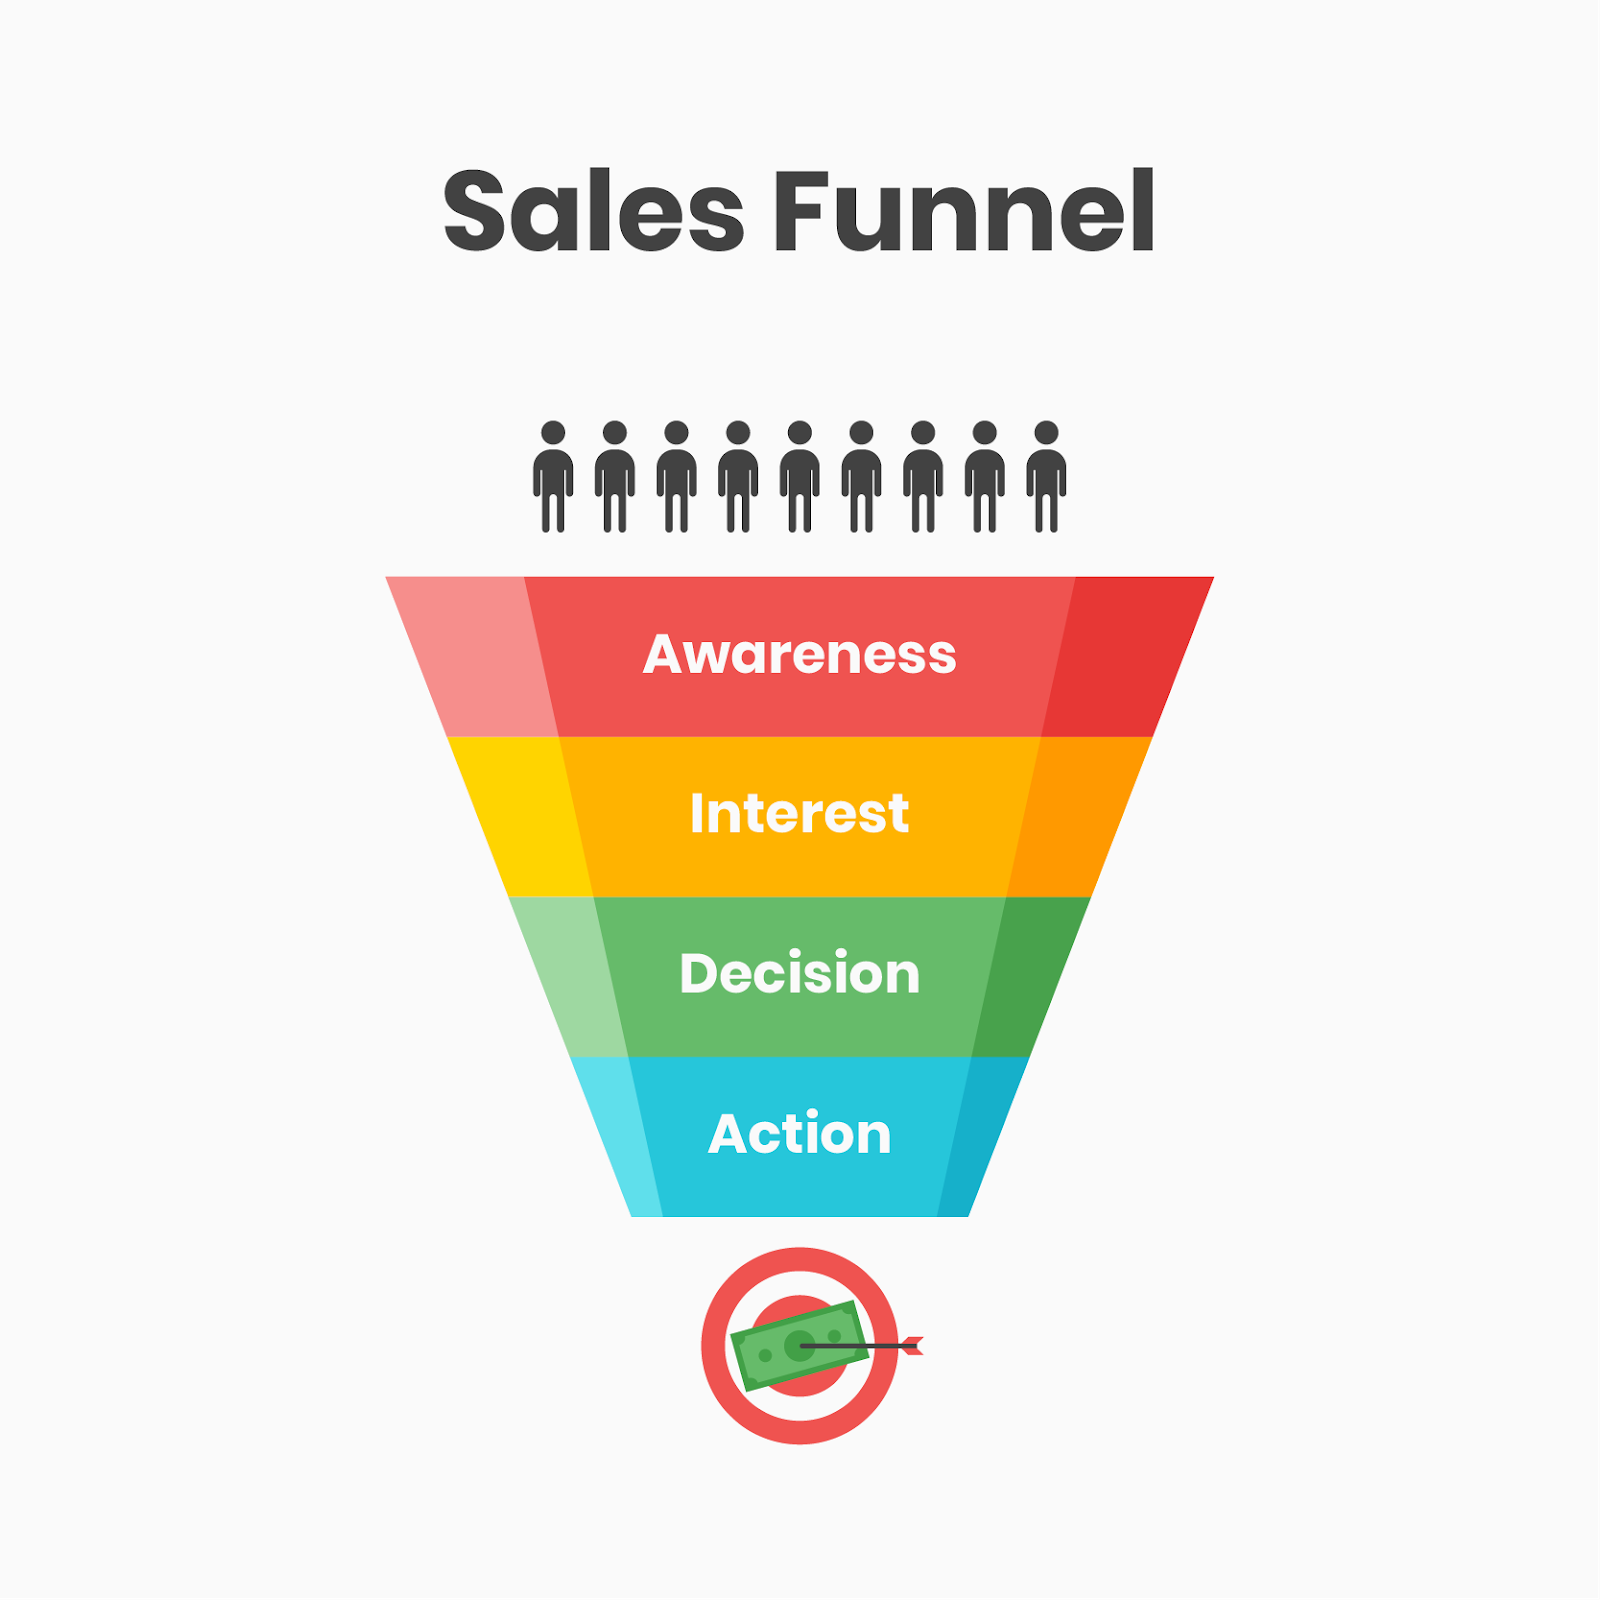 4 stages of a sales funnel